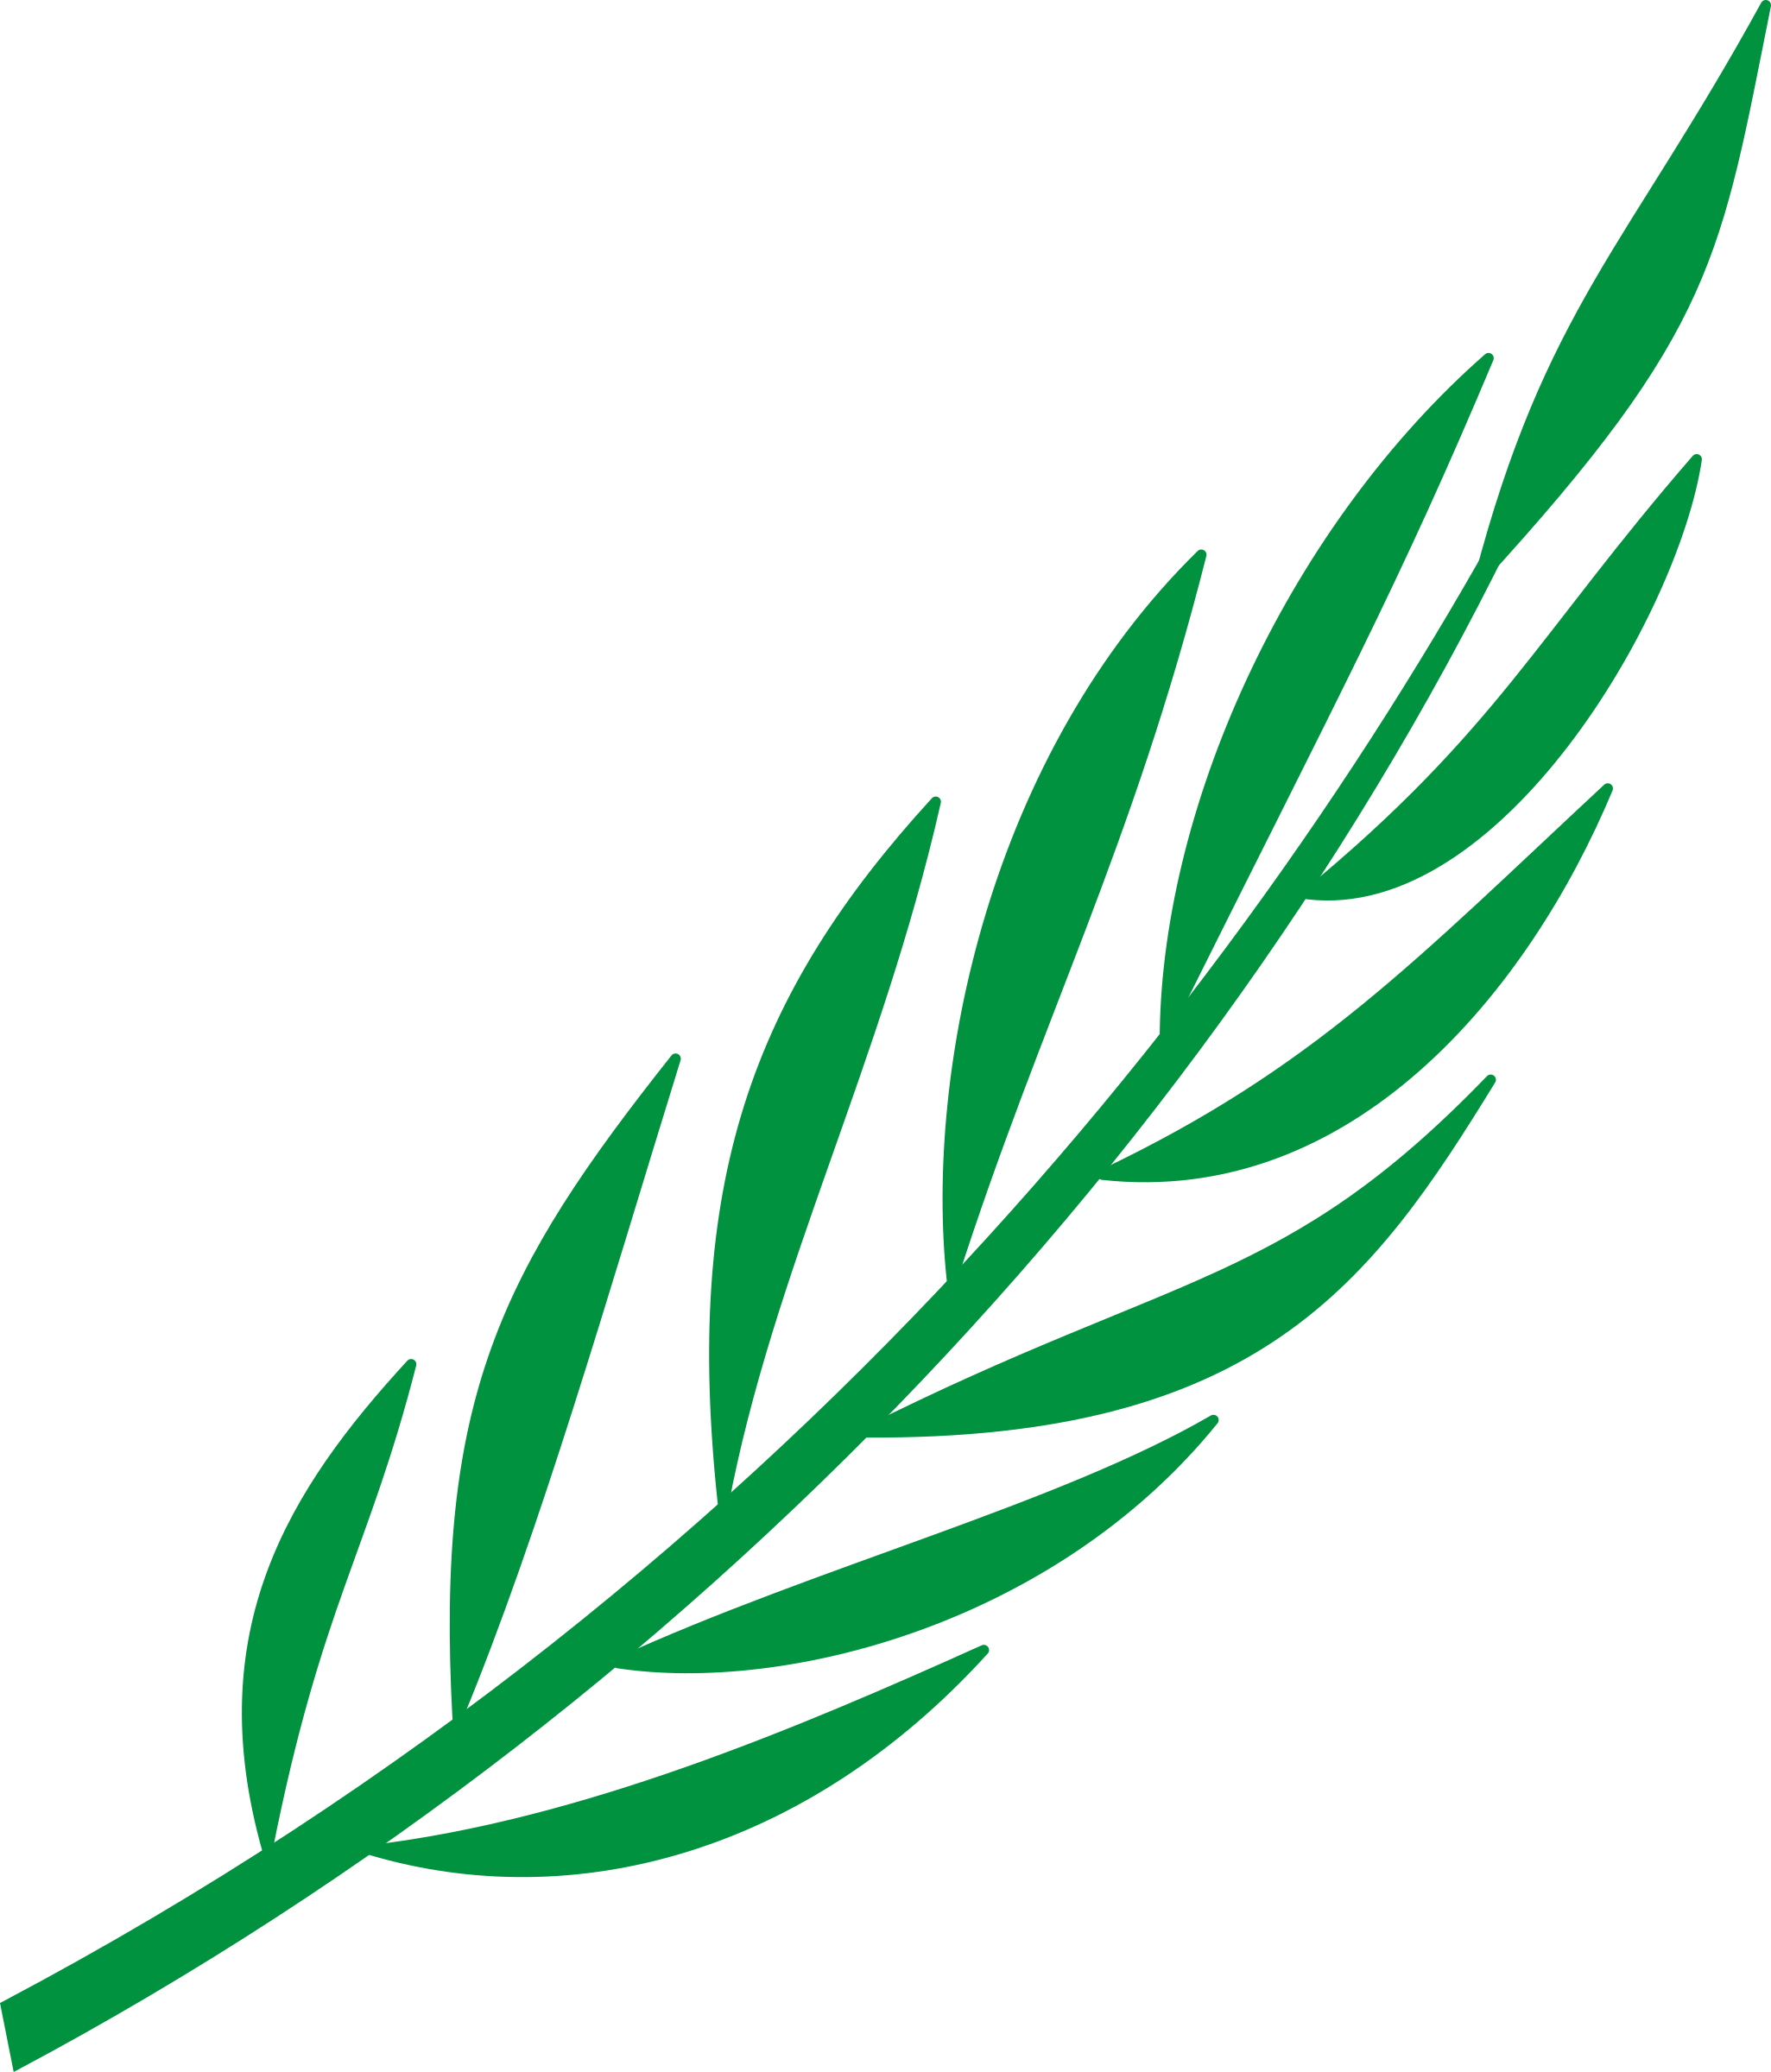 Laurel branch png. Icons free and downloads